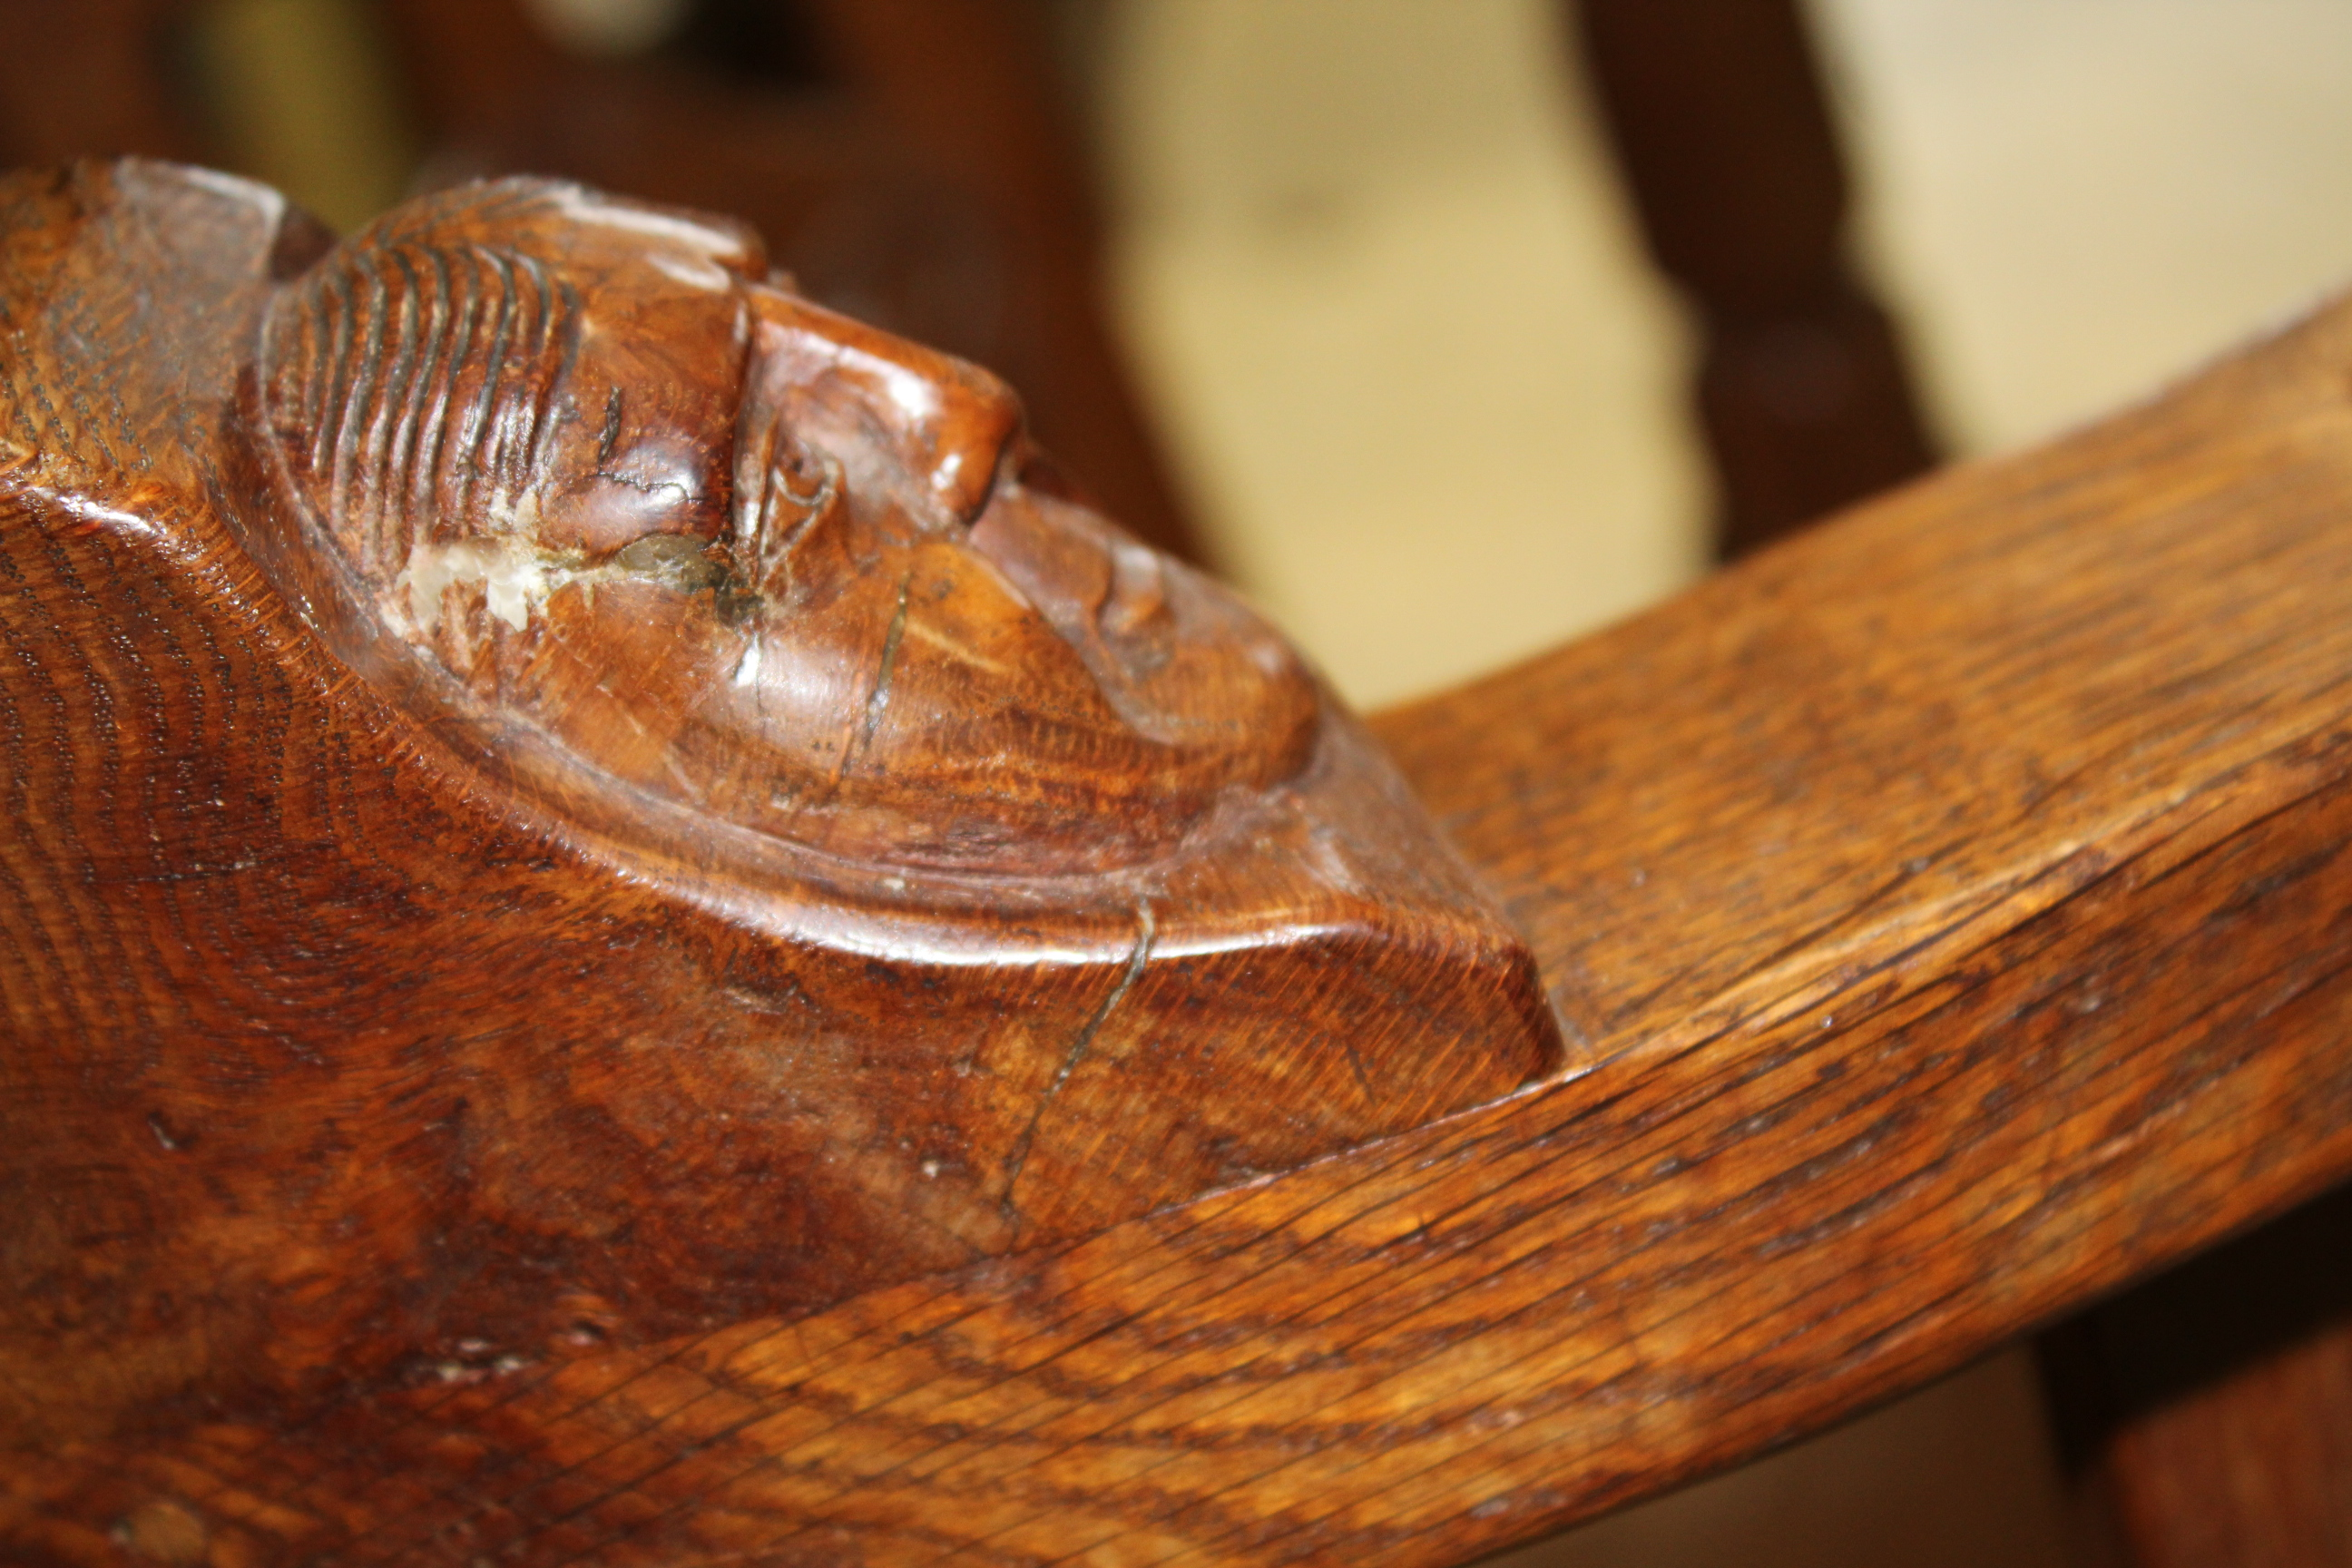 ROBERT THOMPSON OF KILBURN - MOUSEMAN MONKS CHAIR a circa 1920s/1930s oak Monk's armchair with a - Image 27 of 27